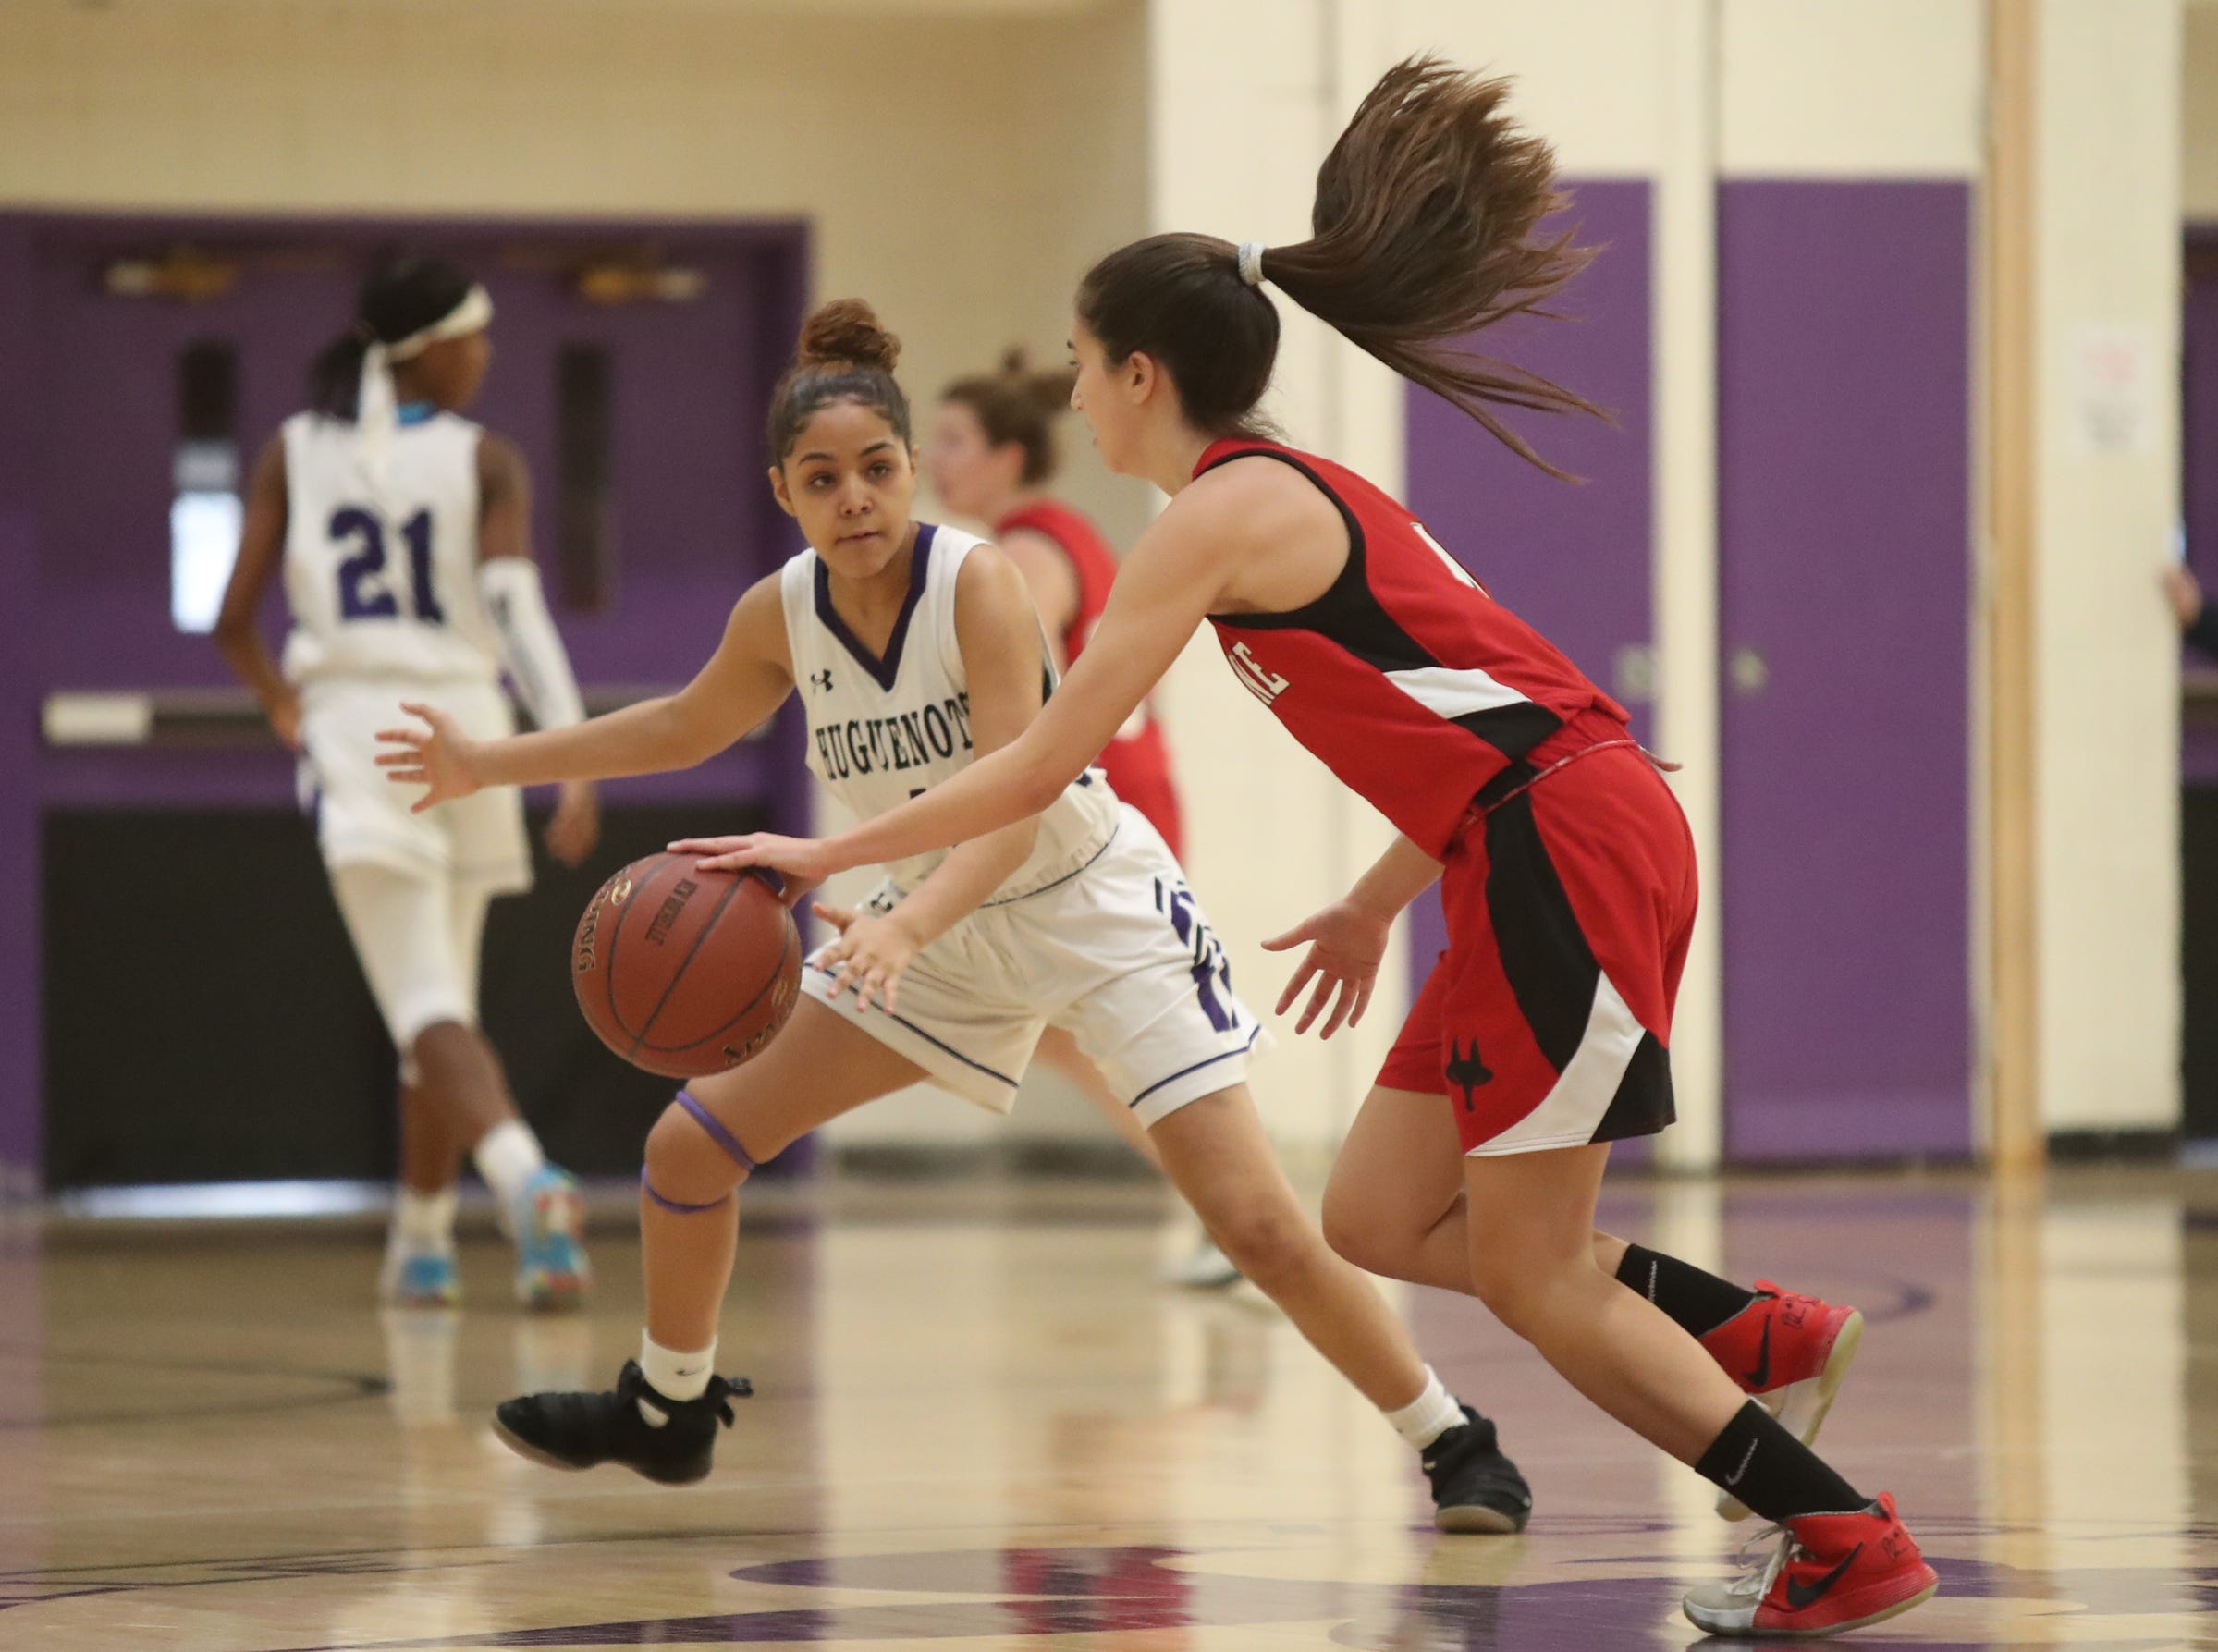 New Rochelle defeats Fox Lane 53-39 in the class AA girls basketball outbracket game at New Rochelle High School in New Rochelle on Saturday, February 16, 2019.